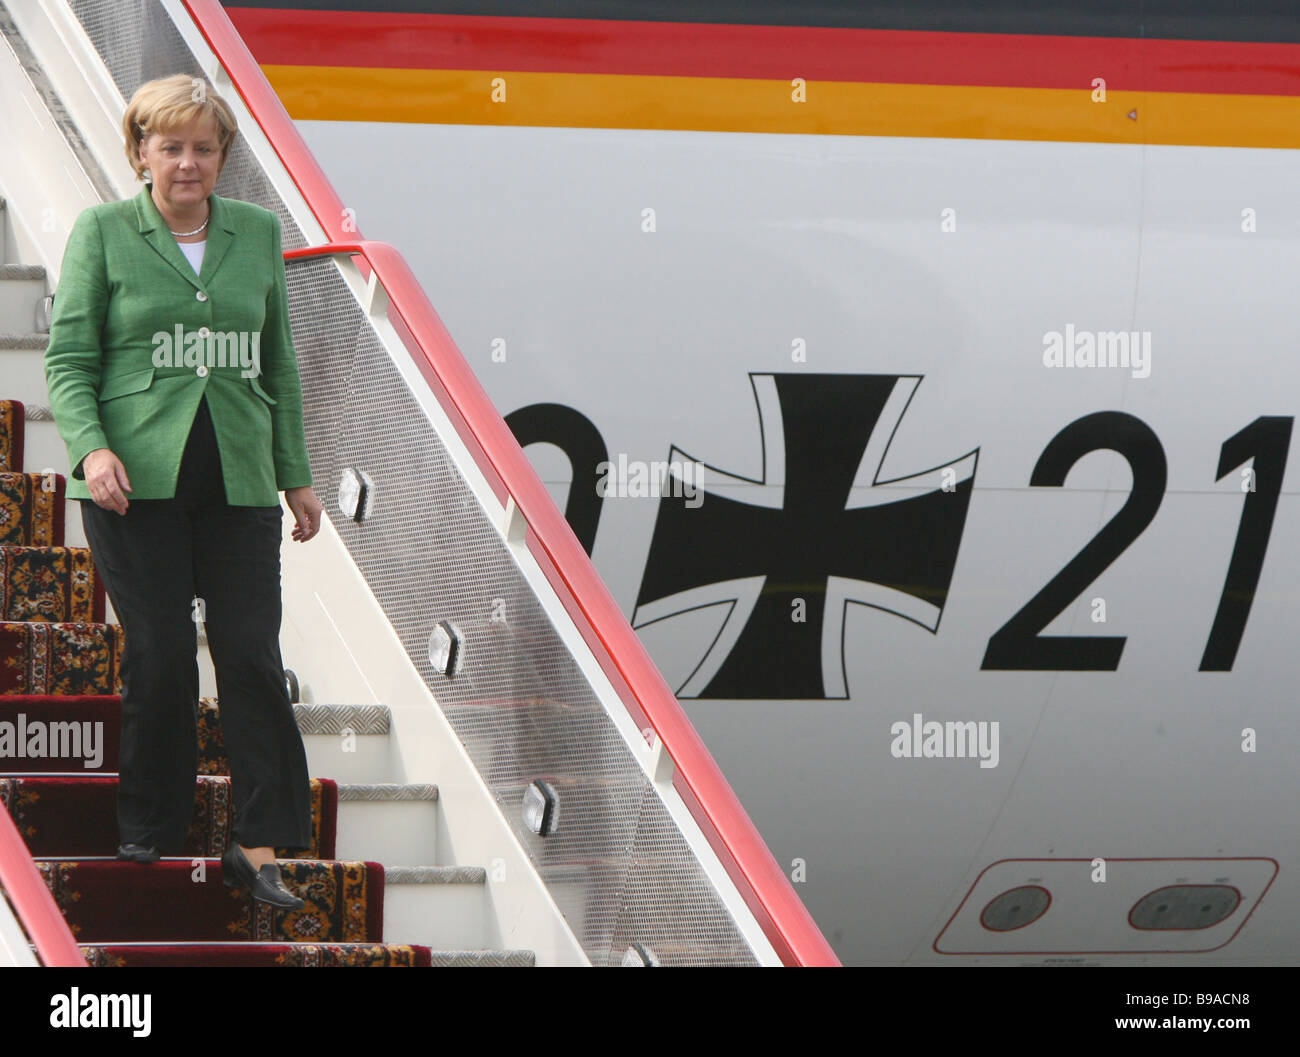 German Federal Chancellor Angela Merkel arriving in St Petersburg Pulkovo airport for the G8 Summit - Stock Image